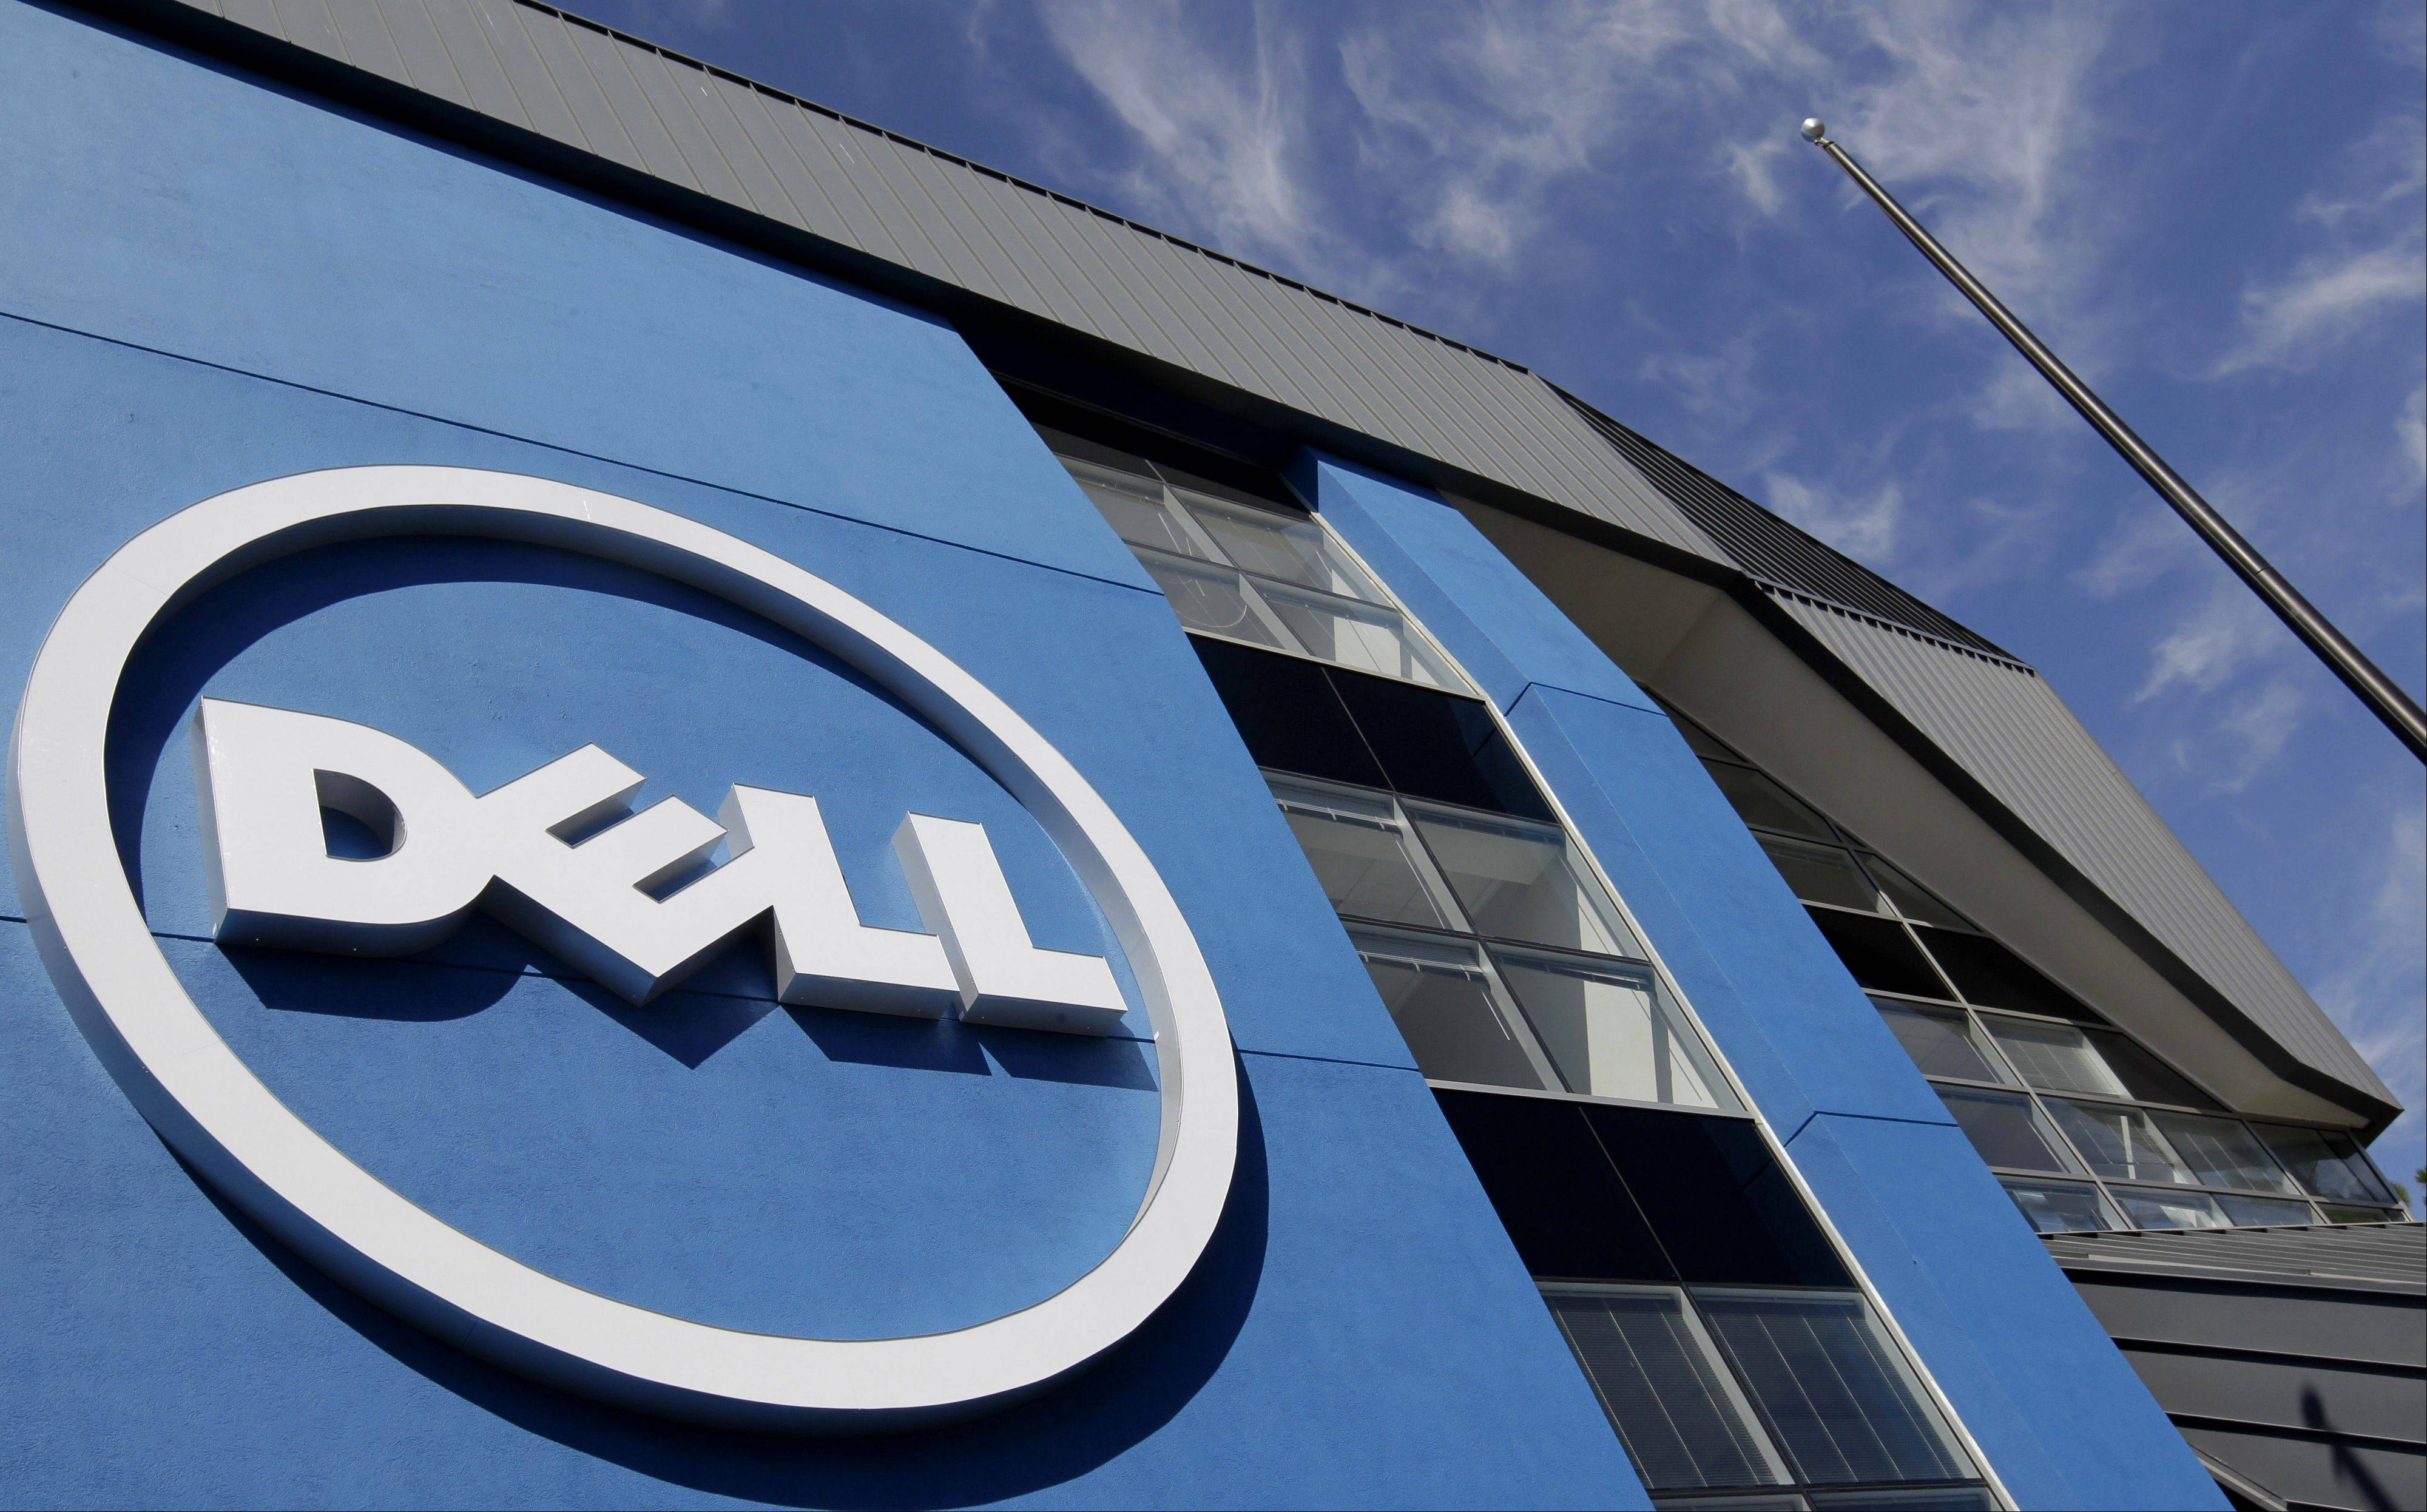 Dell Inc., which last week agreed to be taken private, closed above the offer price for the first time since the announcement after the computer maker's largest outside shareholder said the proposed deal undervalues it.